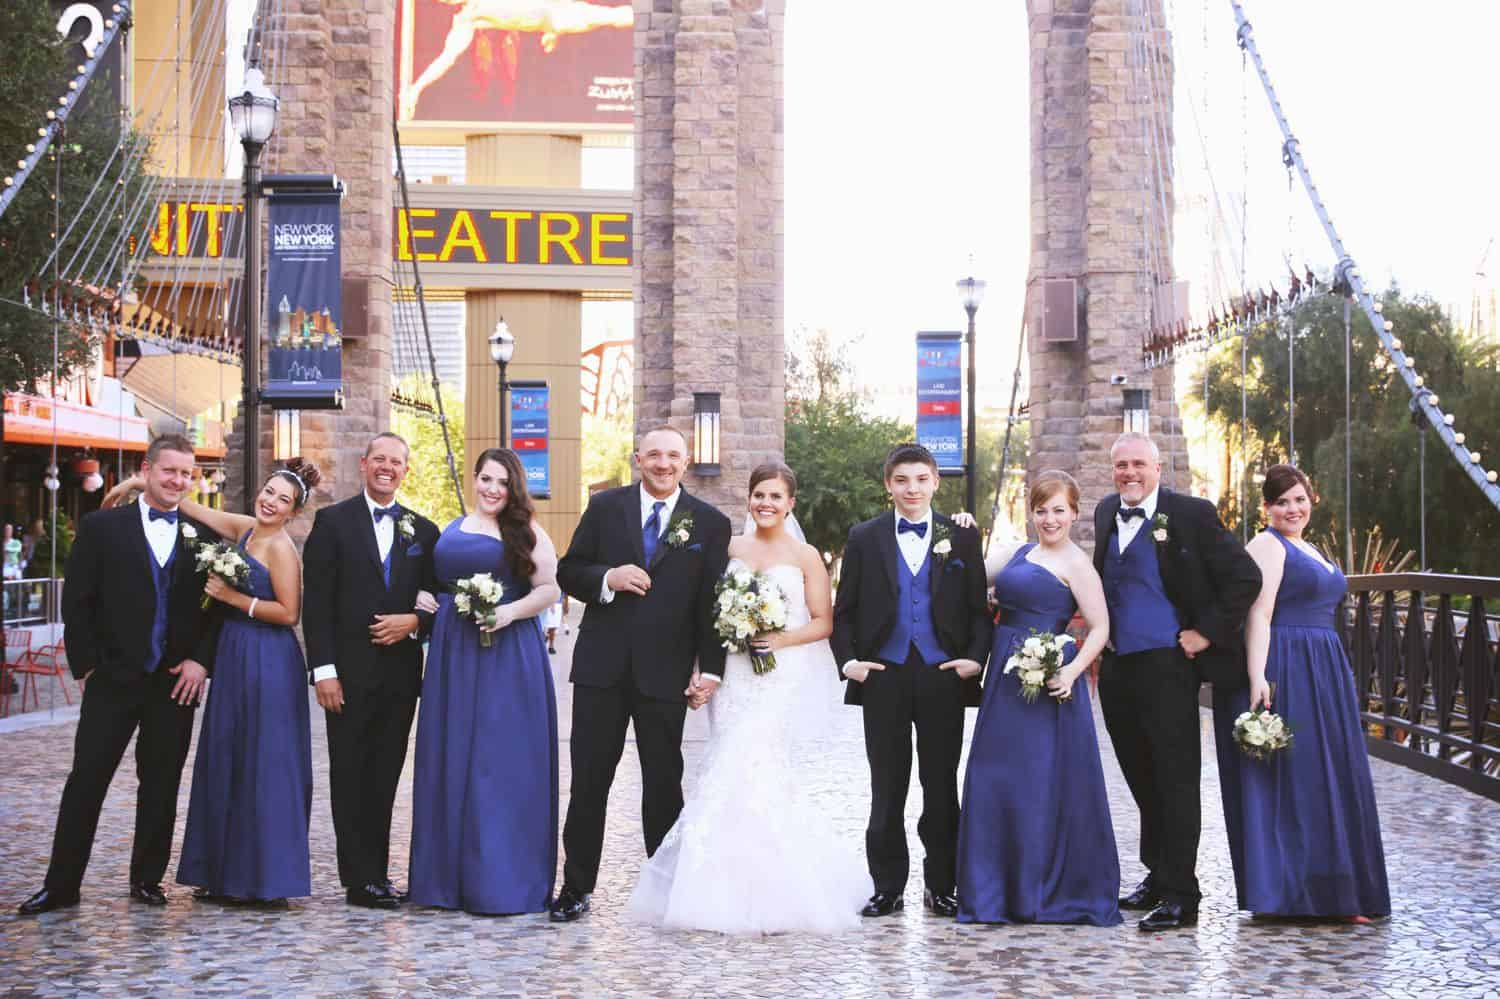 A wedding party wearing navy and black pose on the streets of Las Vegas.